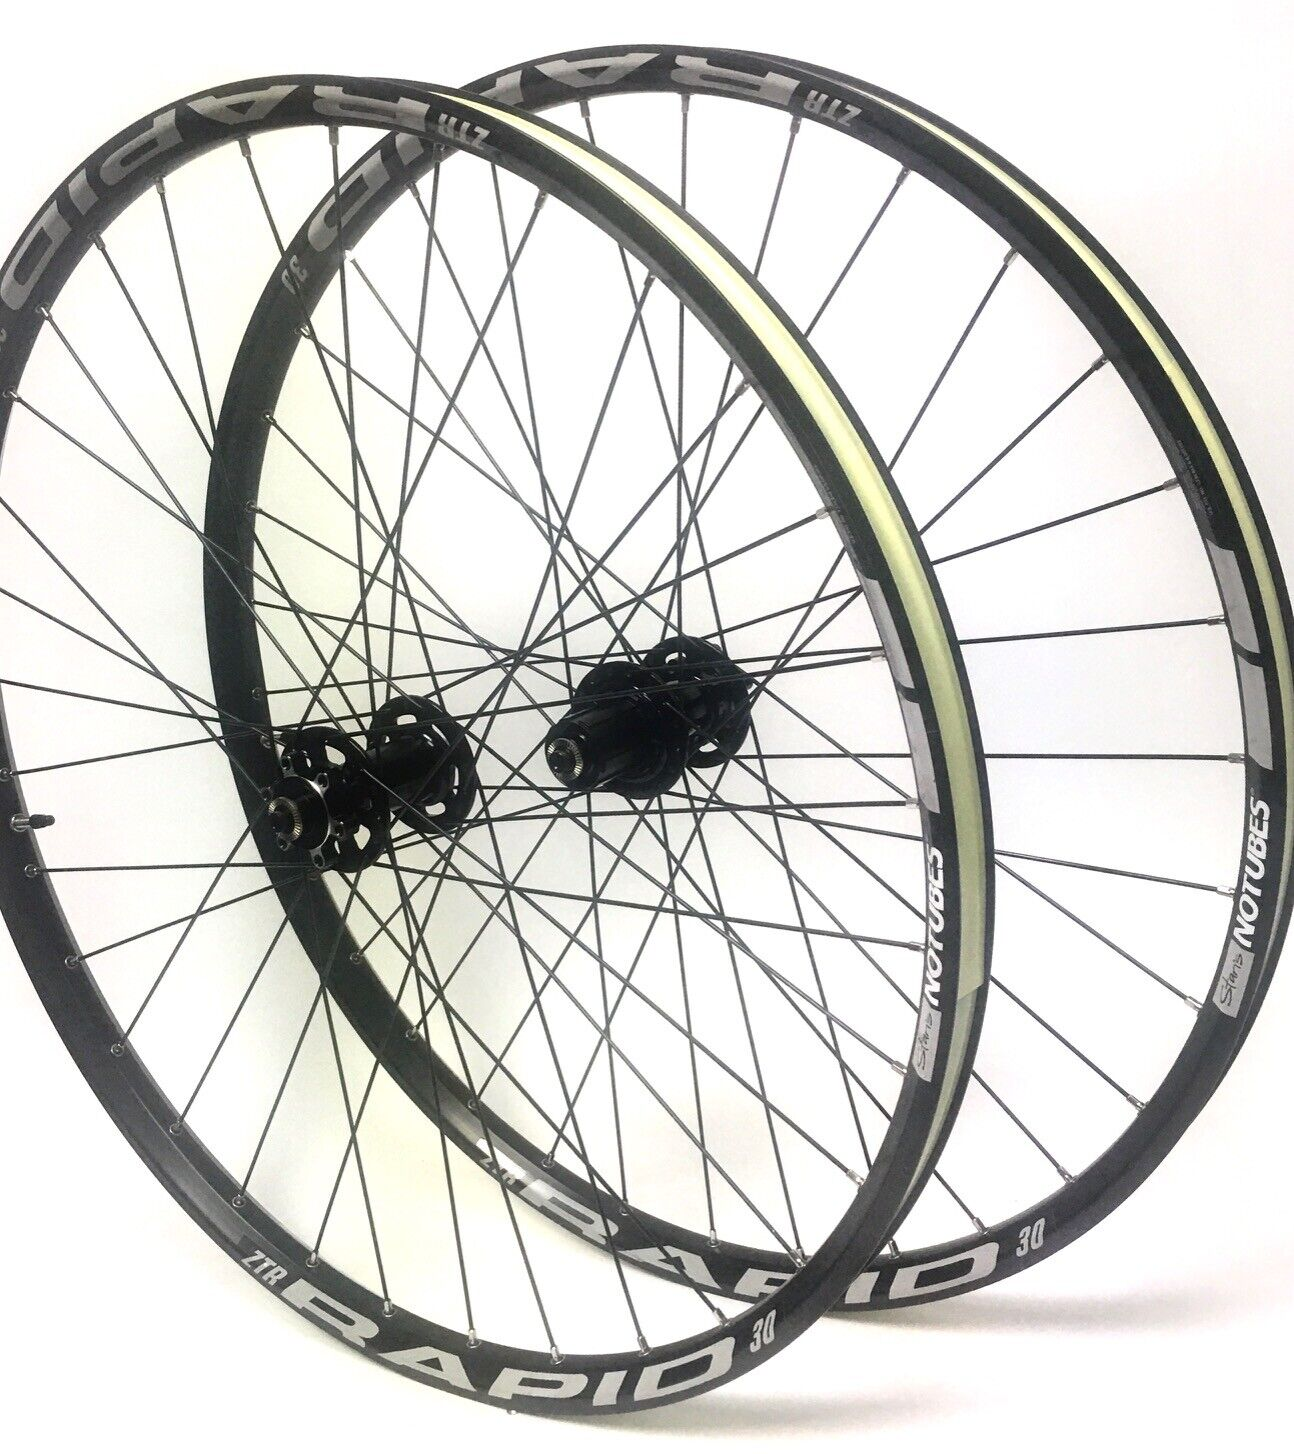 "DT Swiss E 1900 Spline Mountain Bike Rear Wheel 27.5/"" 650b BOOST SPACING XD Hub"